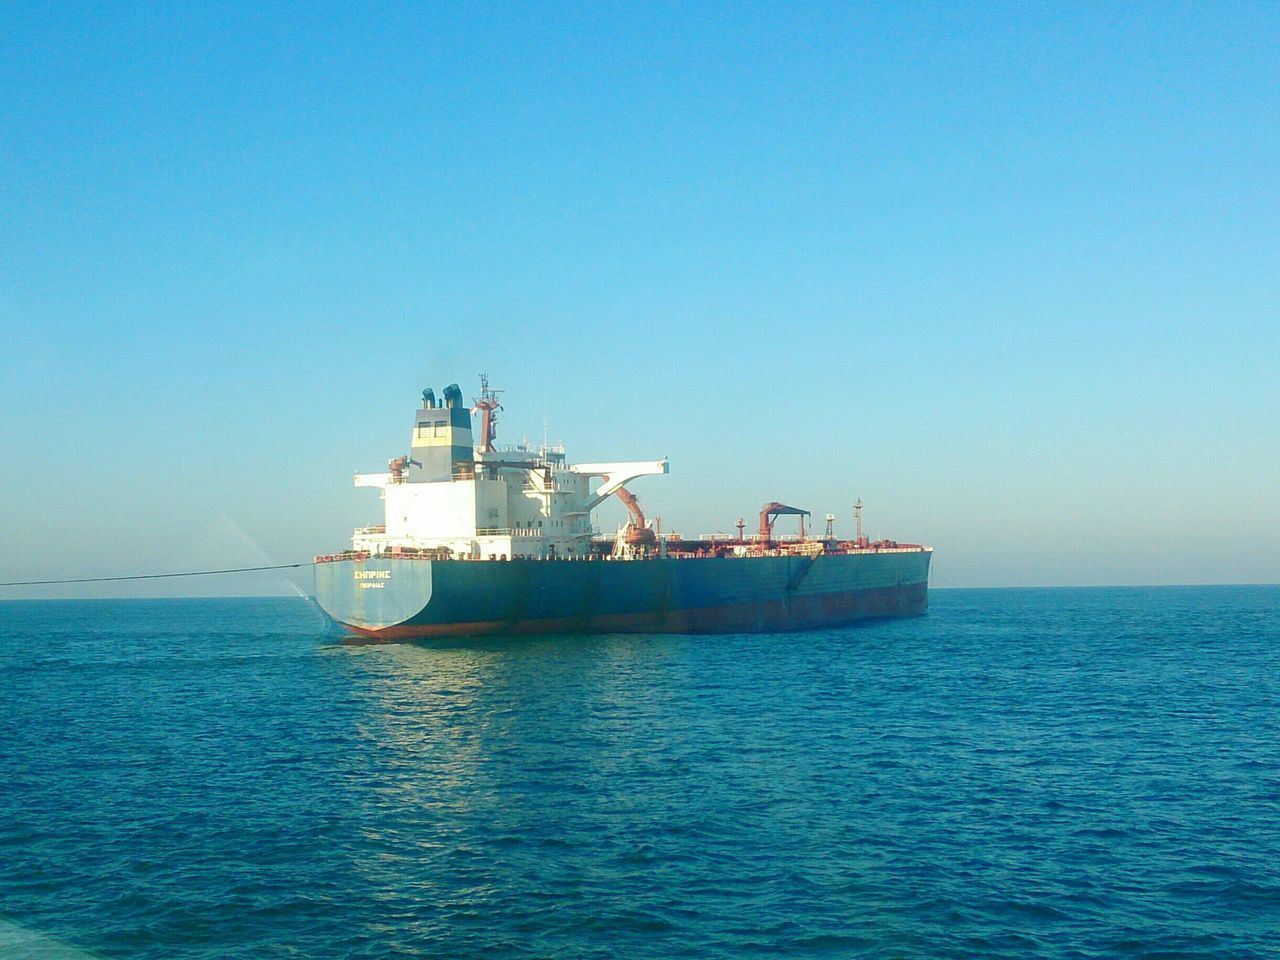 Supply on Anchorage Offshore Platform Sea Shipping  Oil Industry Tankers Vessel Anchorage Leixoes Matosinhos Porto _Portugal